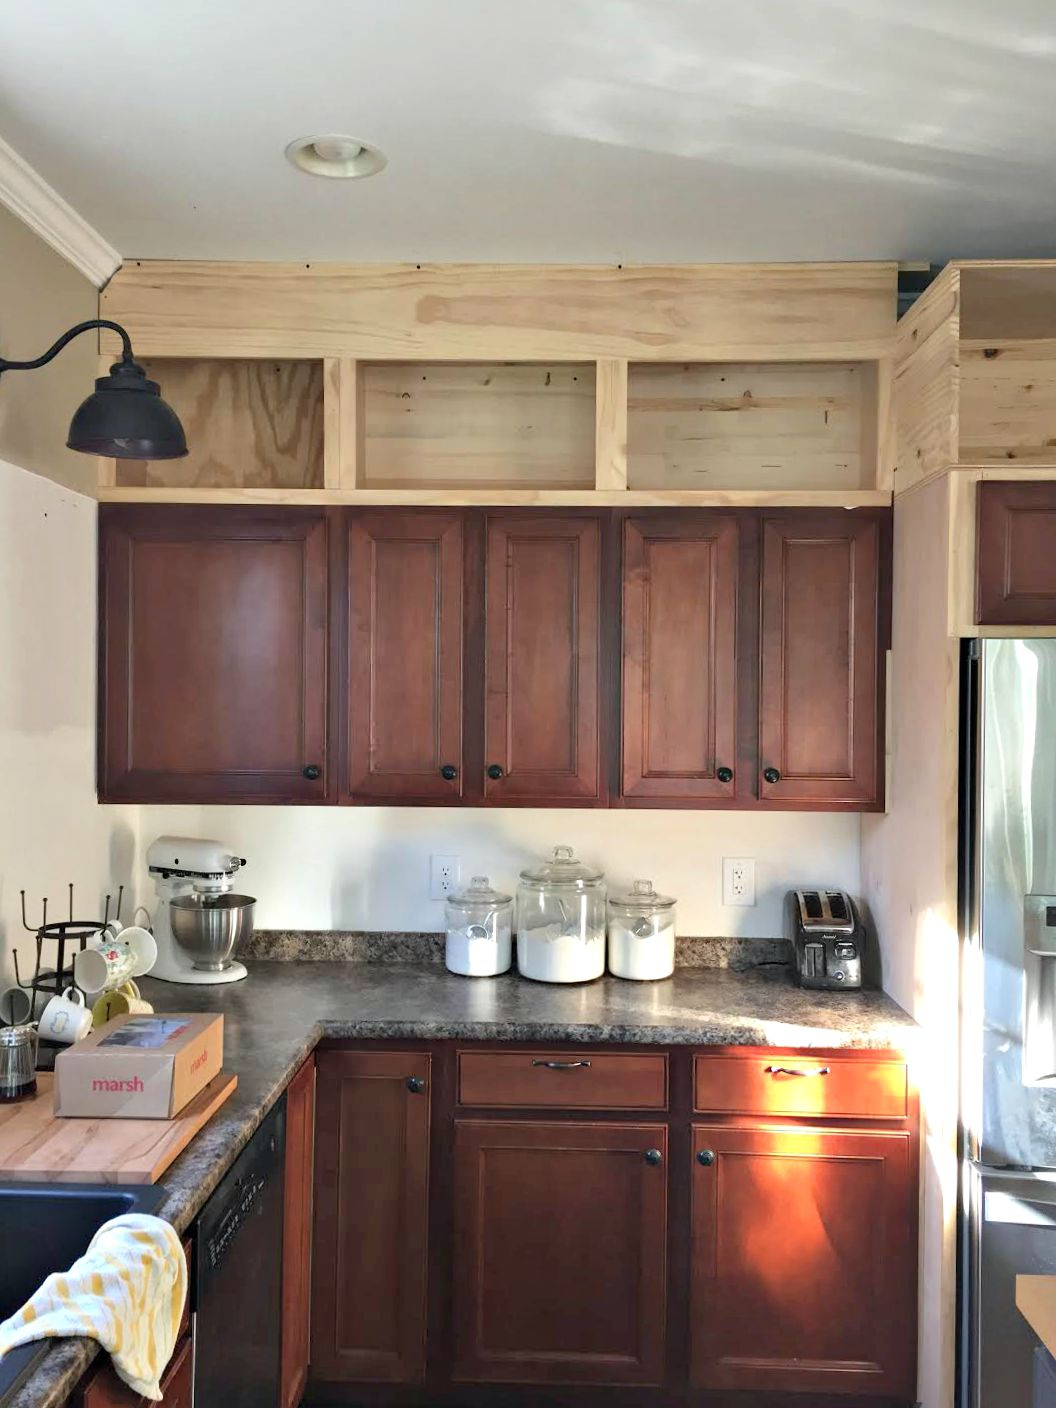 exceptional Adding Cabinets To Existing Kitchen #1: adding height to kitchen cabinets